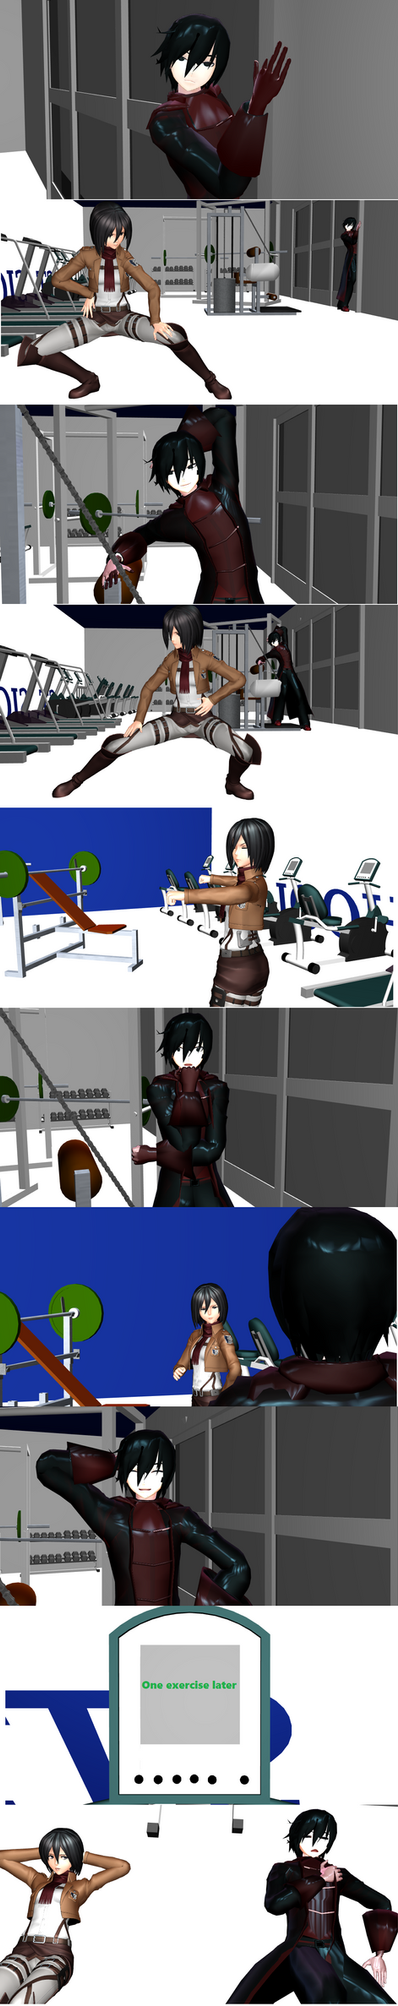 [MMD] Solstice Mikasa thing by MMDabstracts17